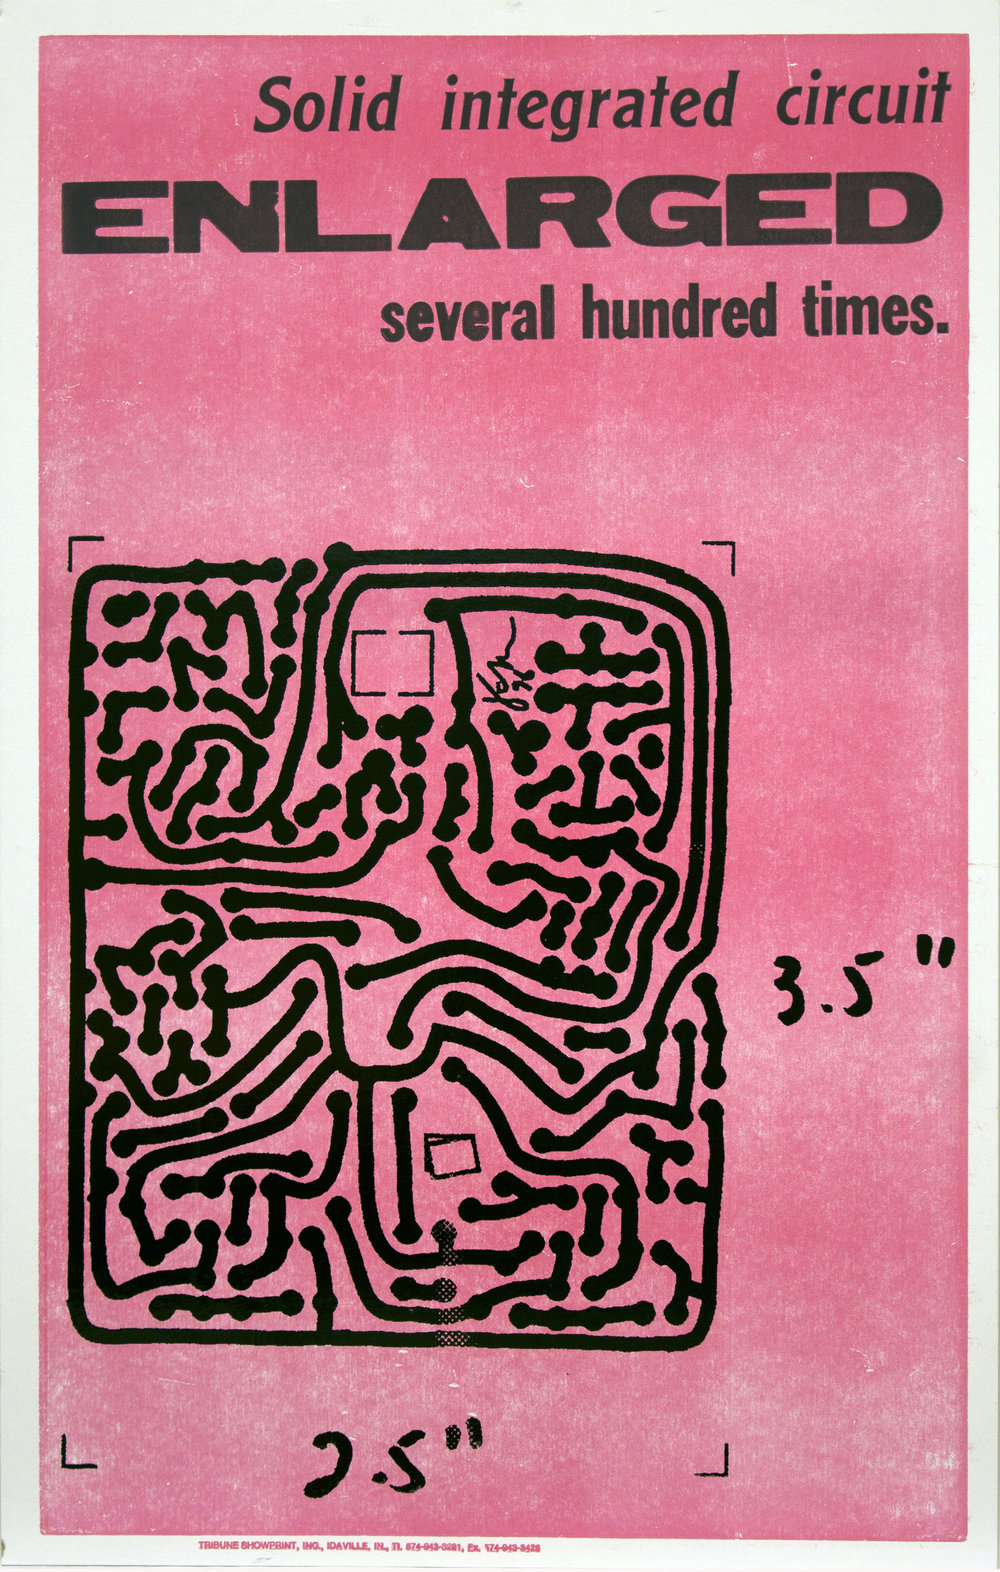 Christopher Michlig and Jan Tumlir,  Micro and Macro Intelligence (Solid integrated circuit ENLARGED several hundred times). , 2017. Silkscreen and letterpress on poster board, 14 x 22 inches